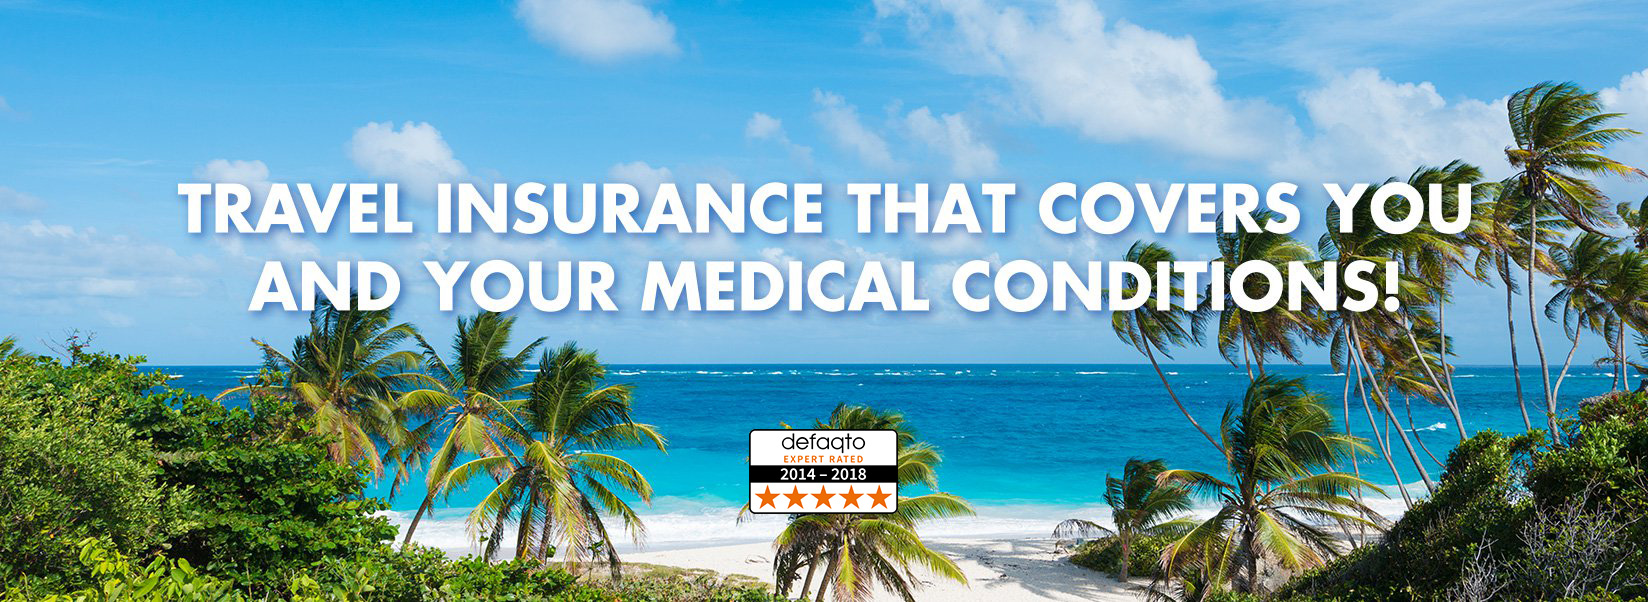 Travel Insurance For High Blood Pressure And High Cholesterol